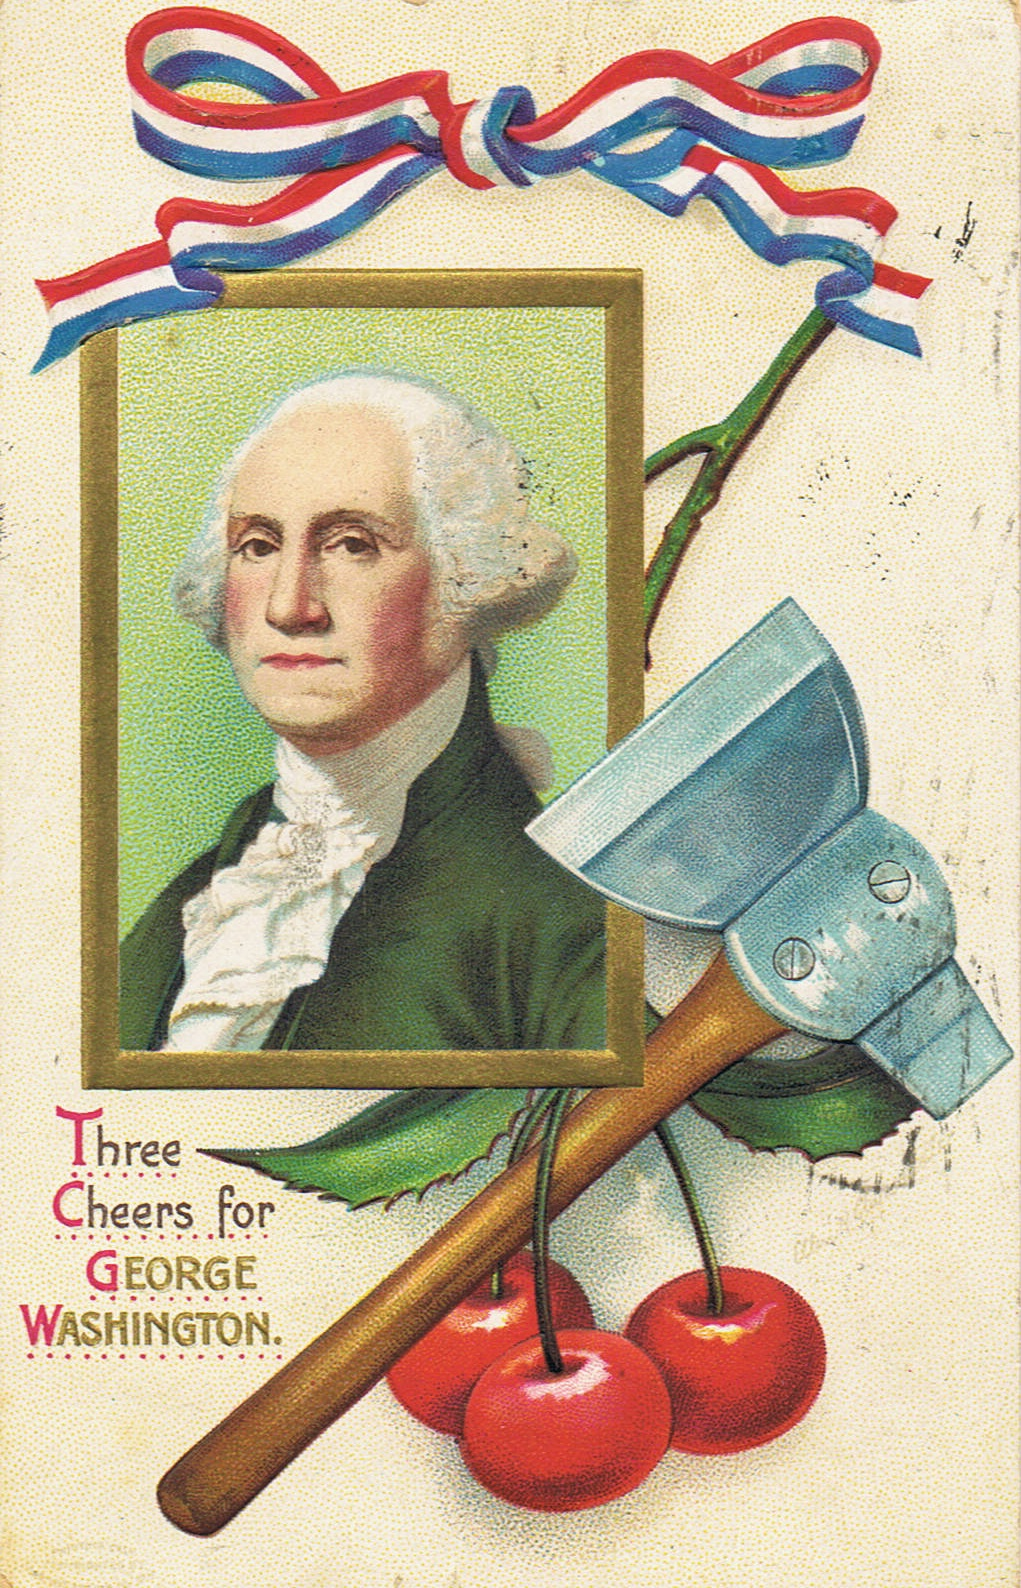 Worksheet Chopped Down Cherry Tree who chopped down the cherry trees ianswalkonthewildside george washington